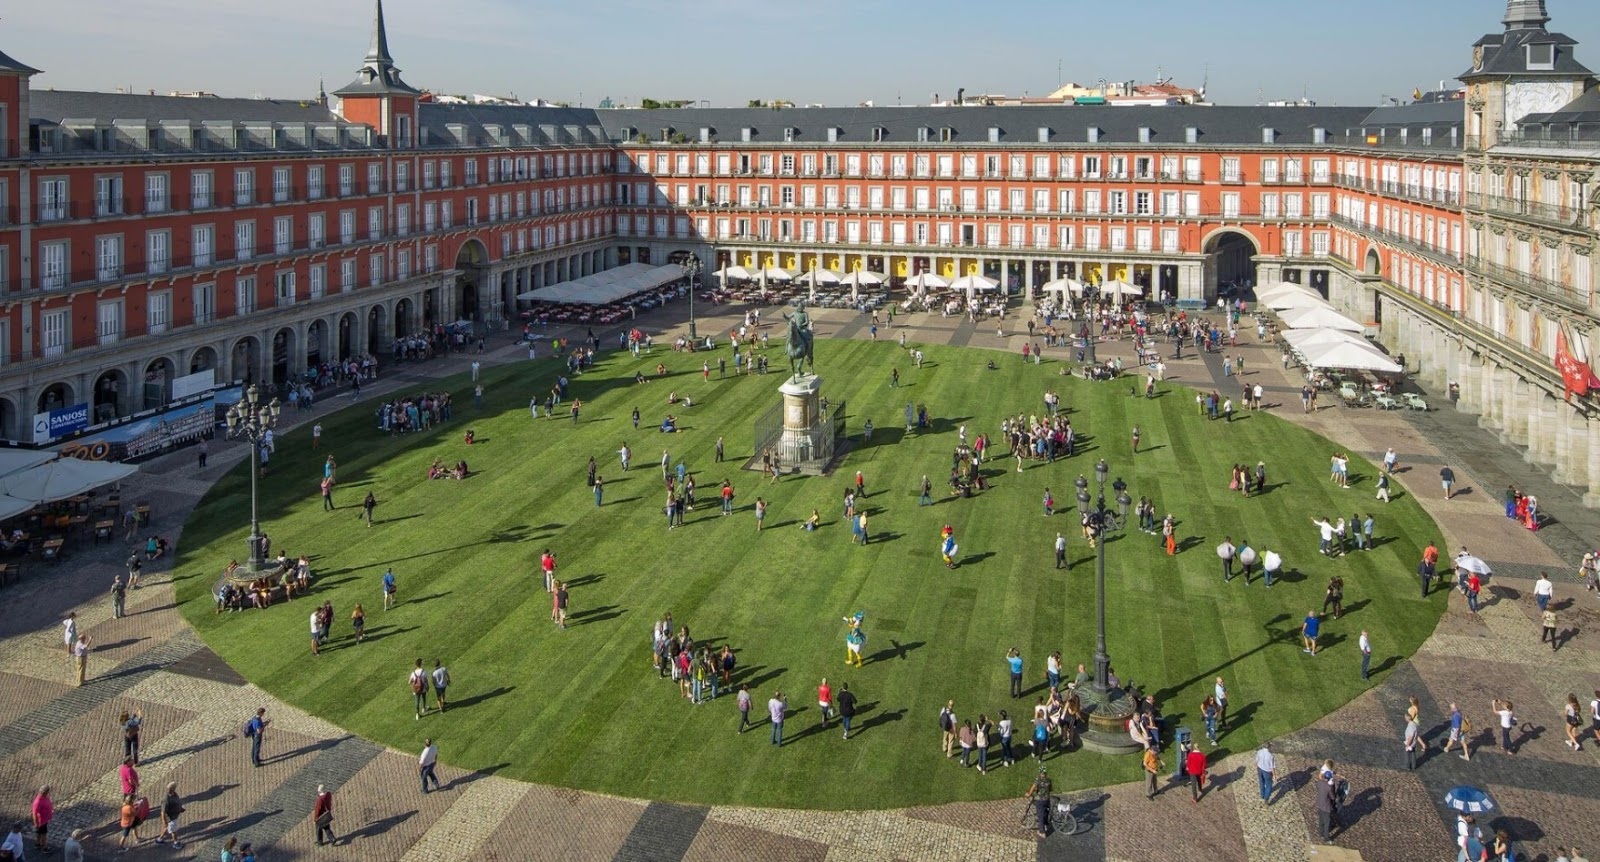 pradera natural de césped en Plaza Mayor Madrid